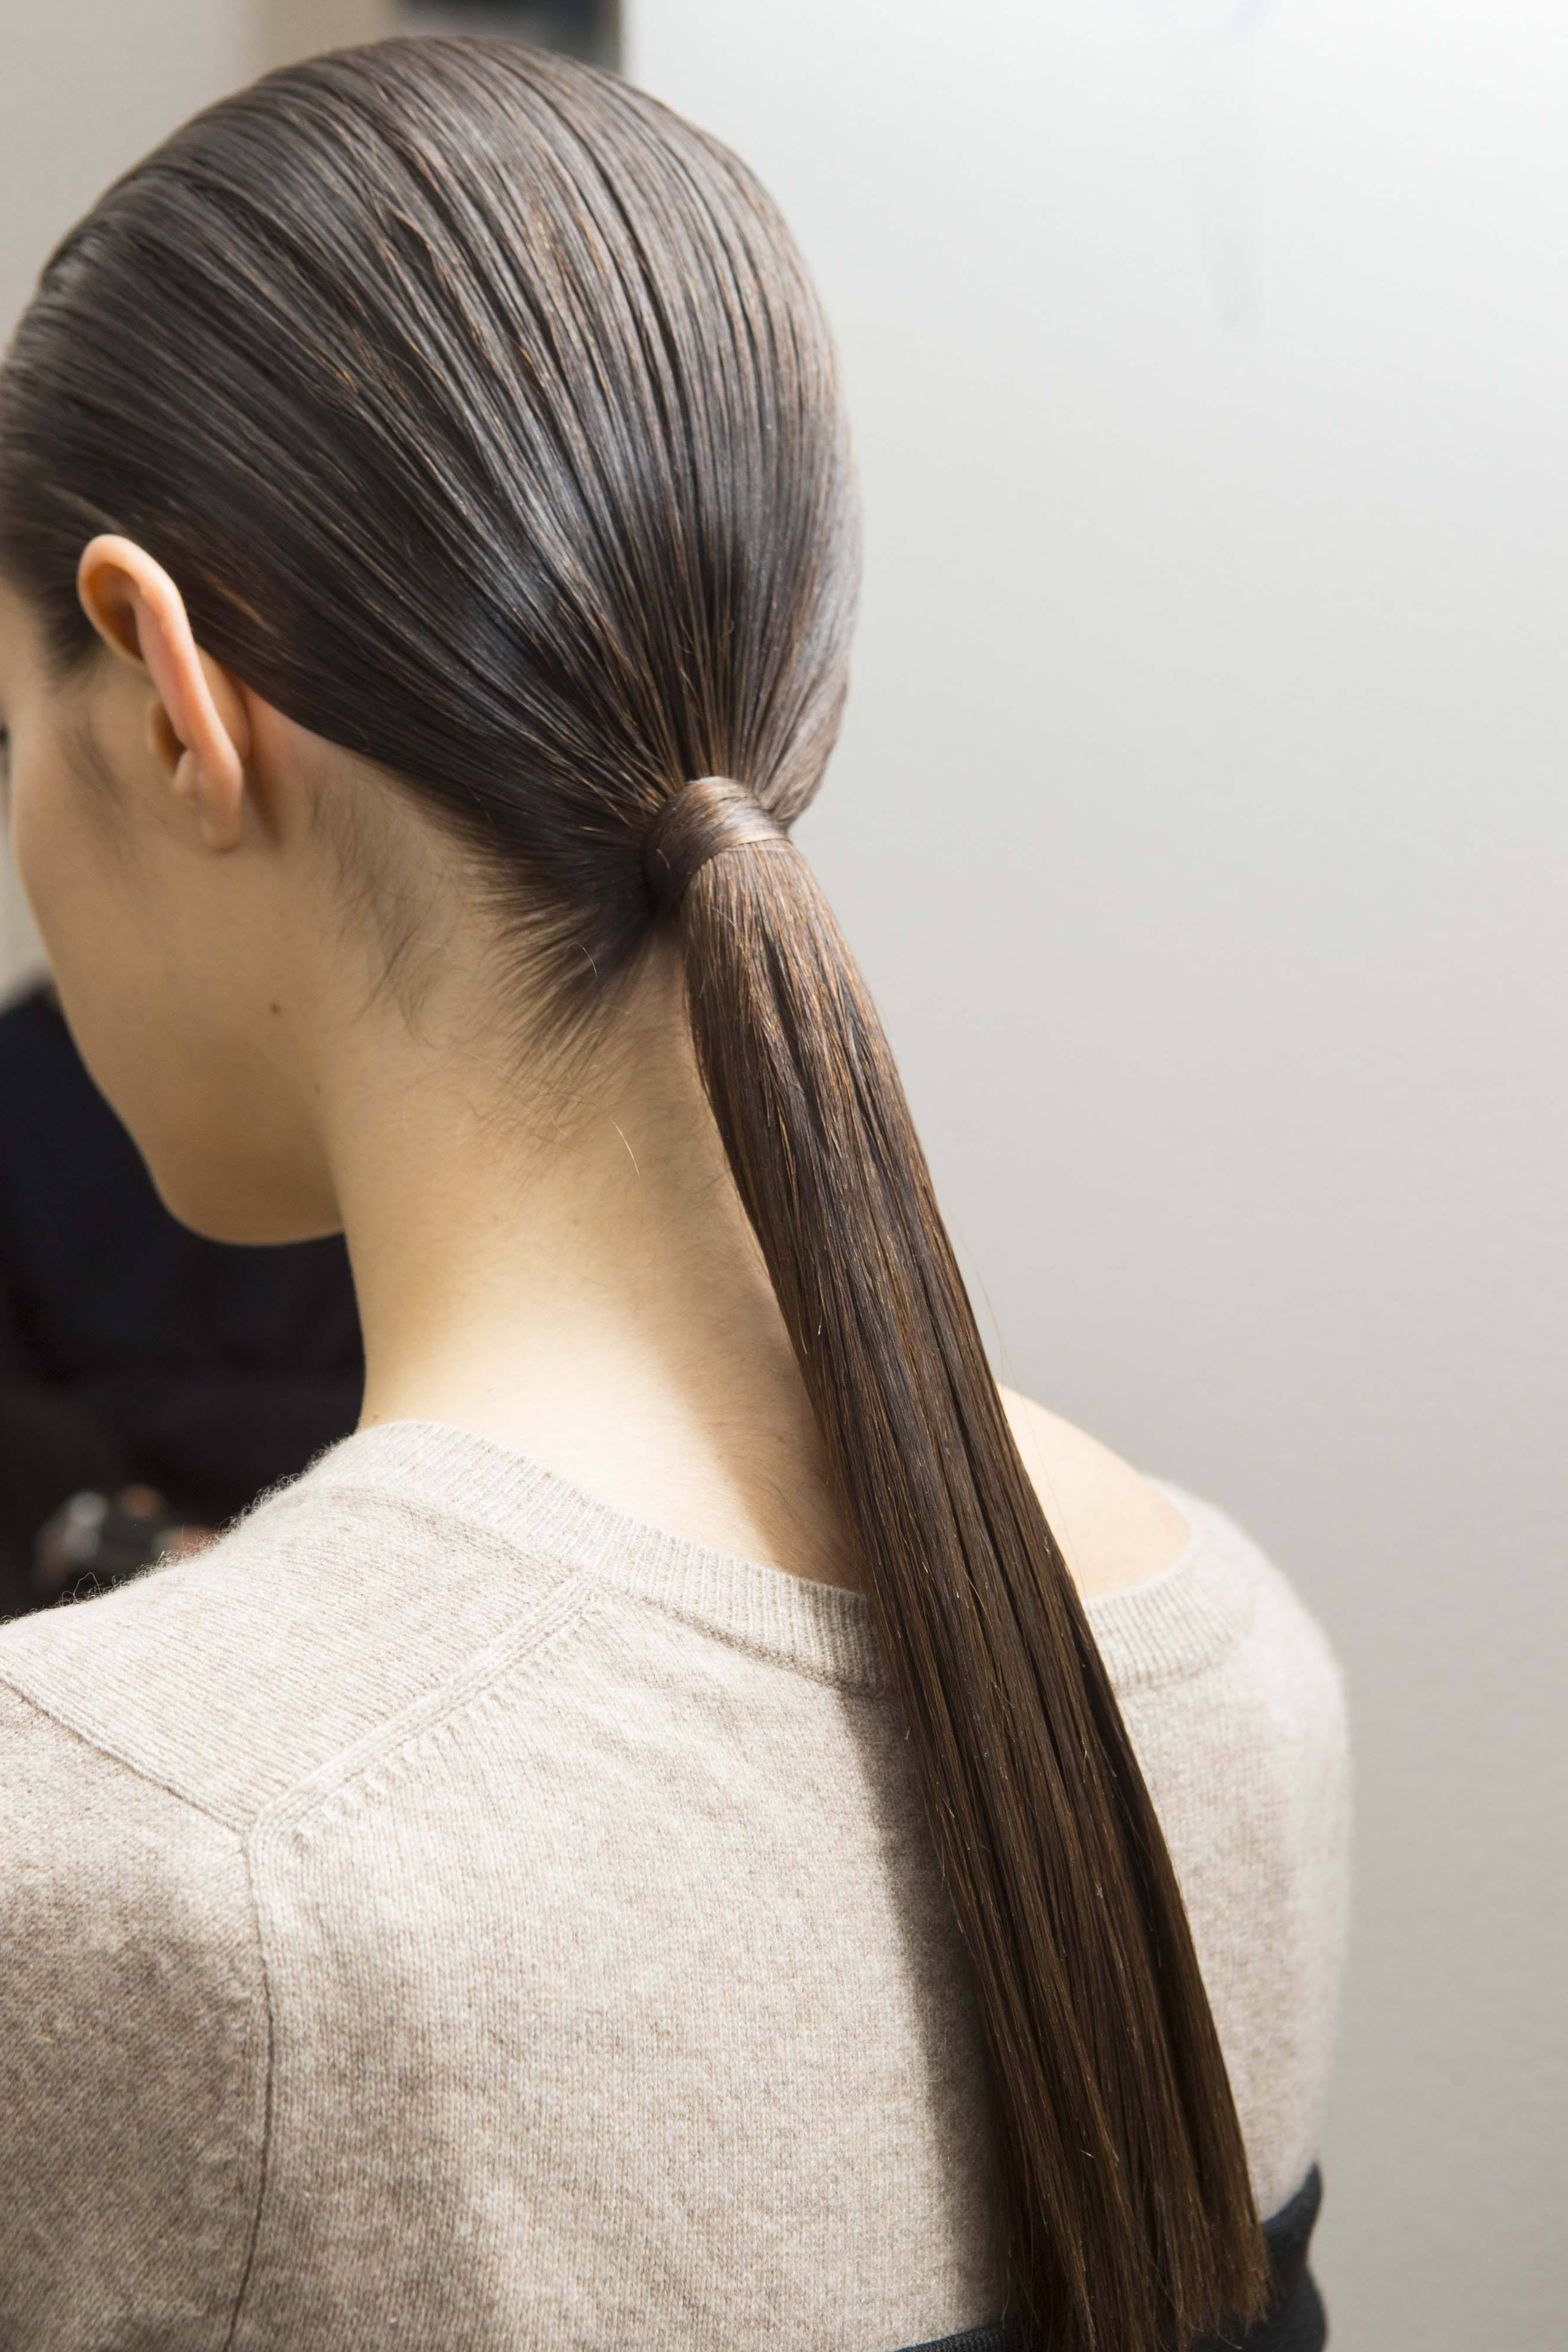 Famous Curly Pony Hairstyles For Ultra Long Hair Intended For Extra Long Hairstyles Trend: 3 Long Ponytails To Try (View 7 of 20)